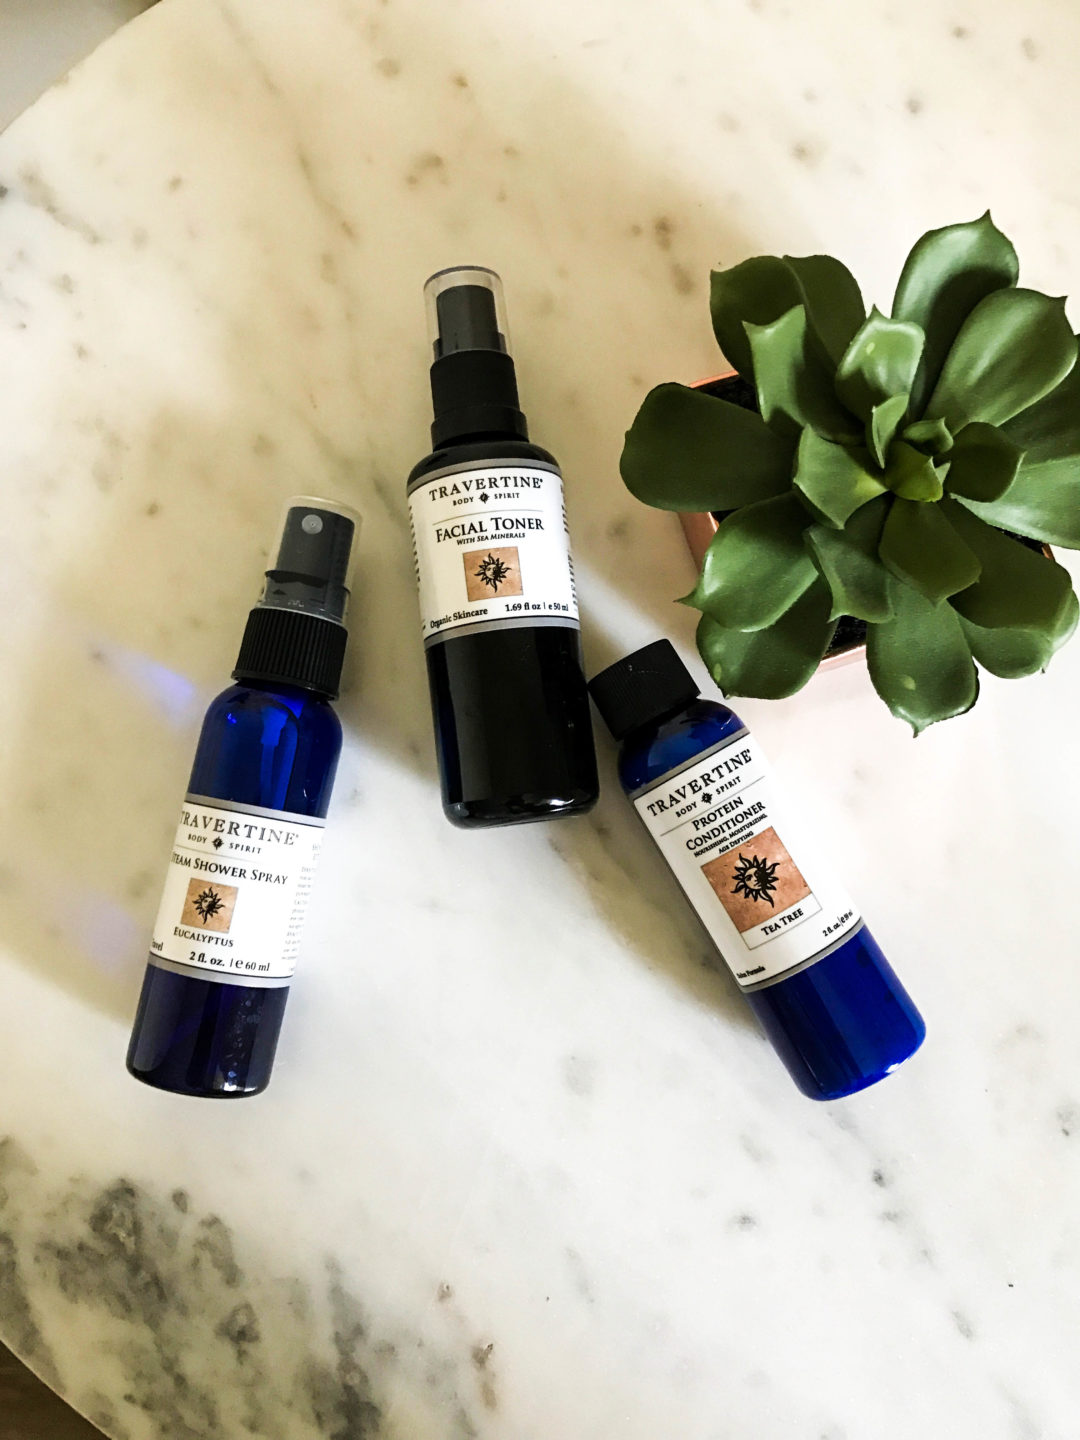 Skincare and beauty products from Travertine Spa